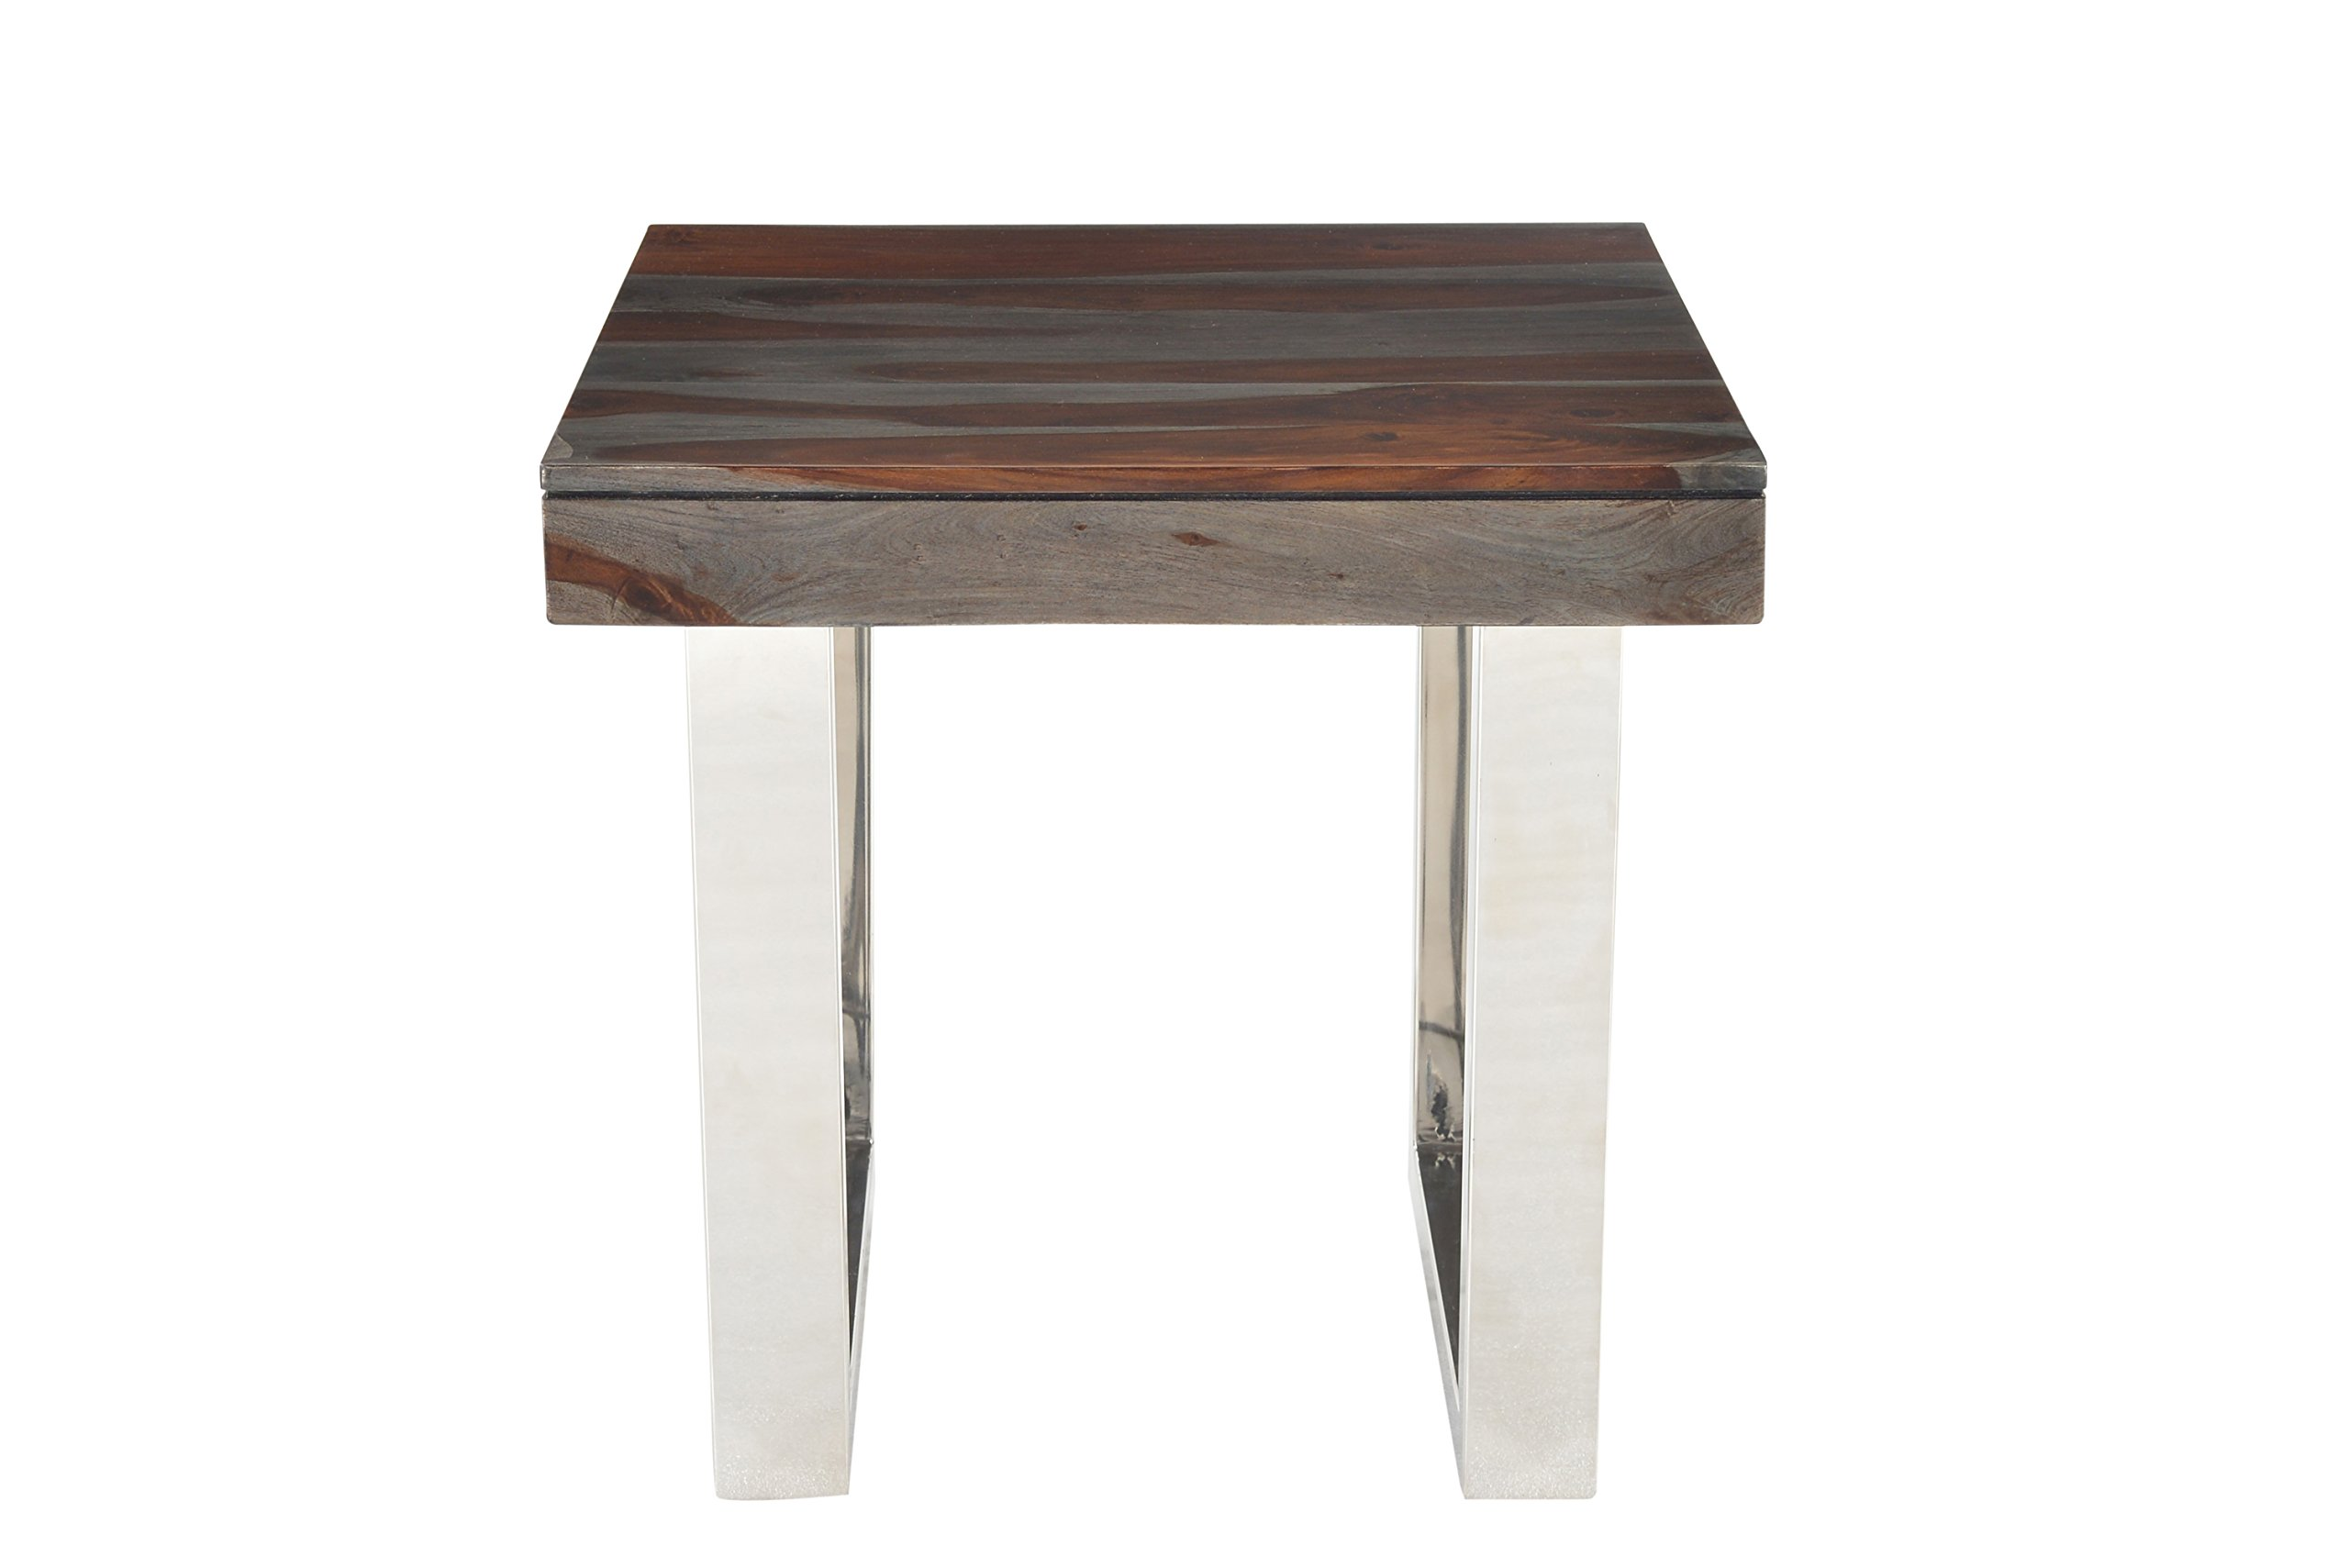 Treasure Trove Stainless Steel Base Grayson End Table, Grey and Red